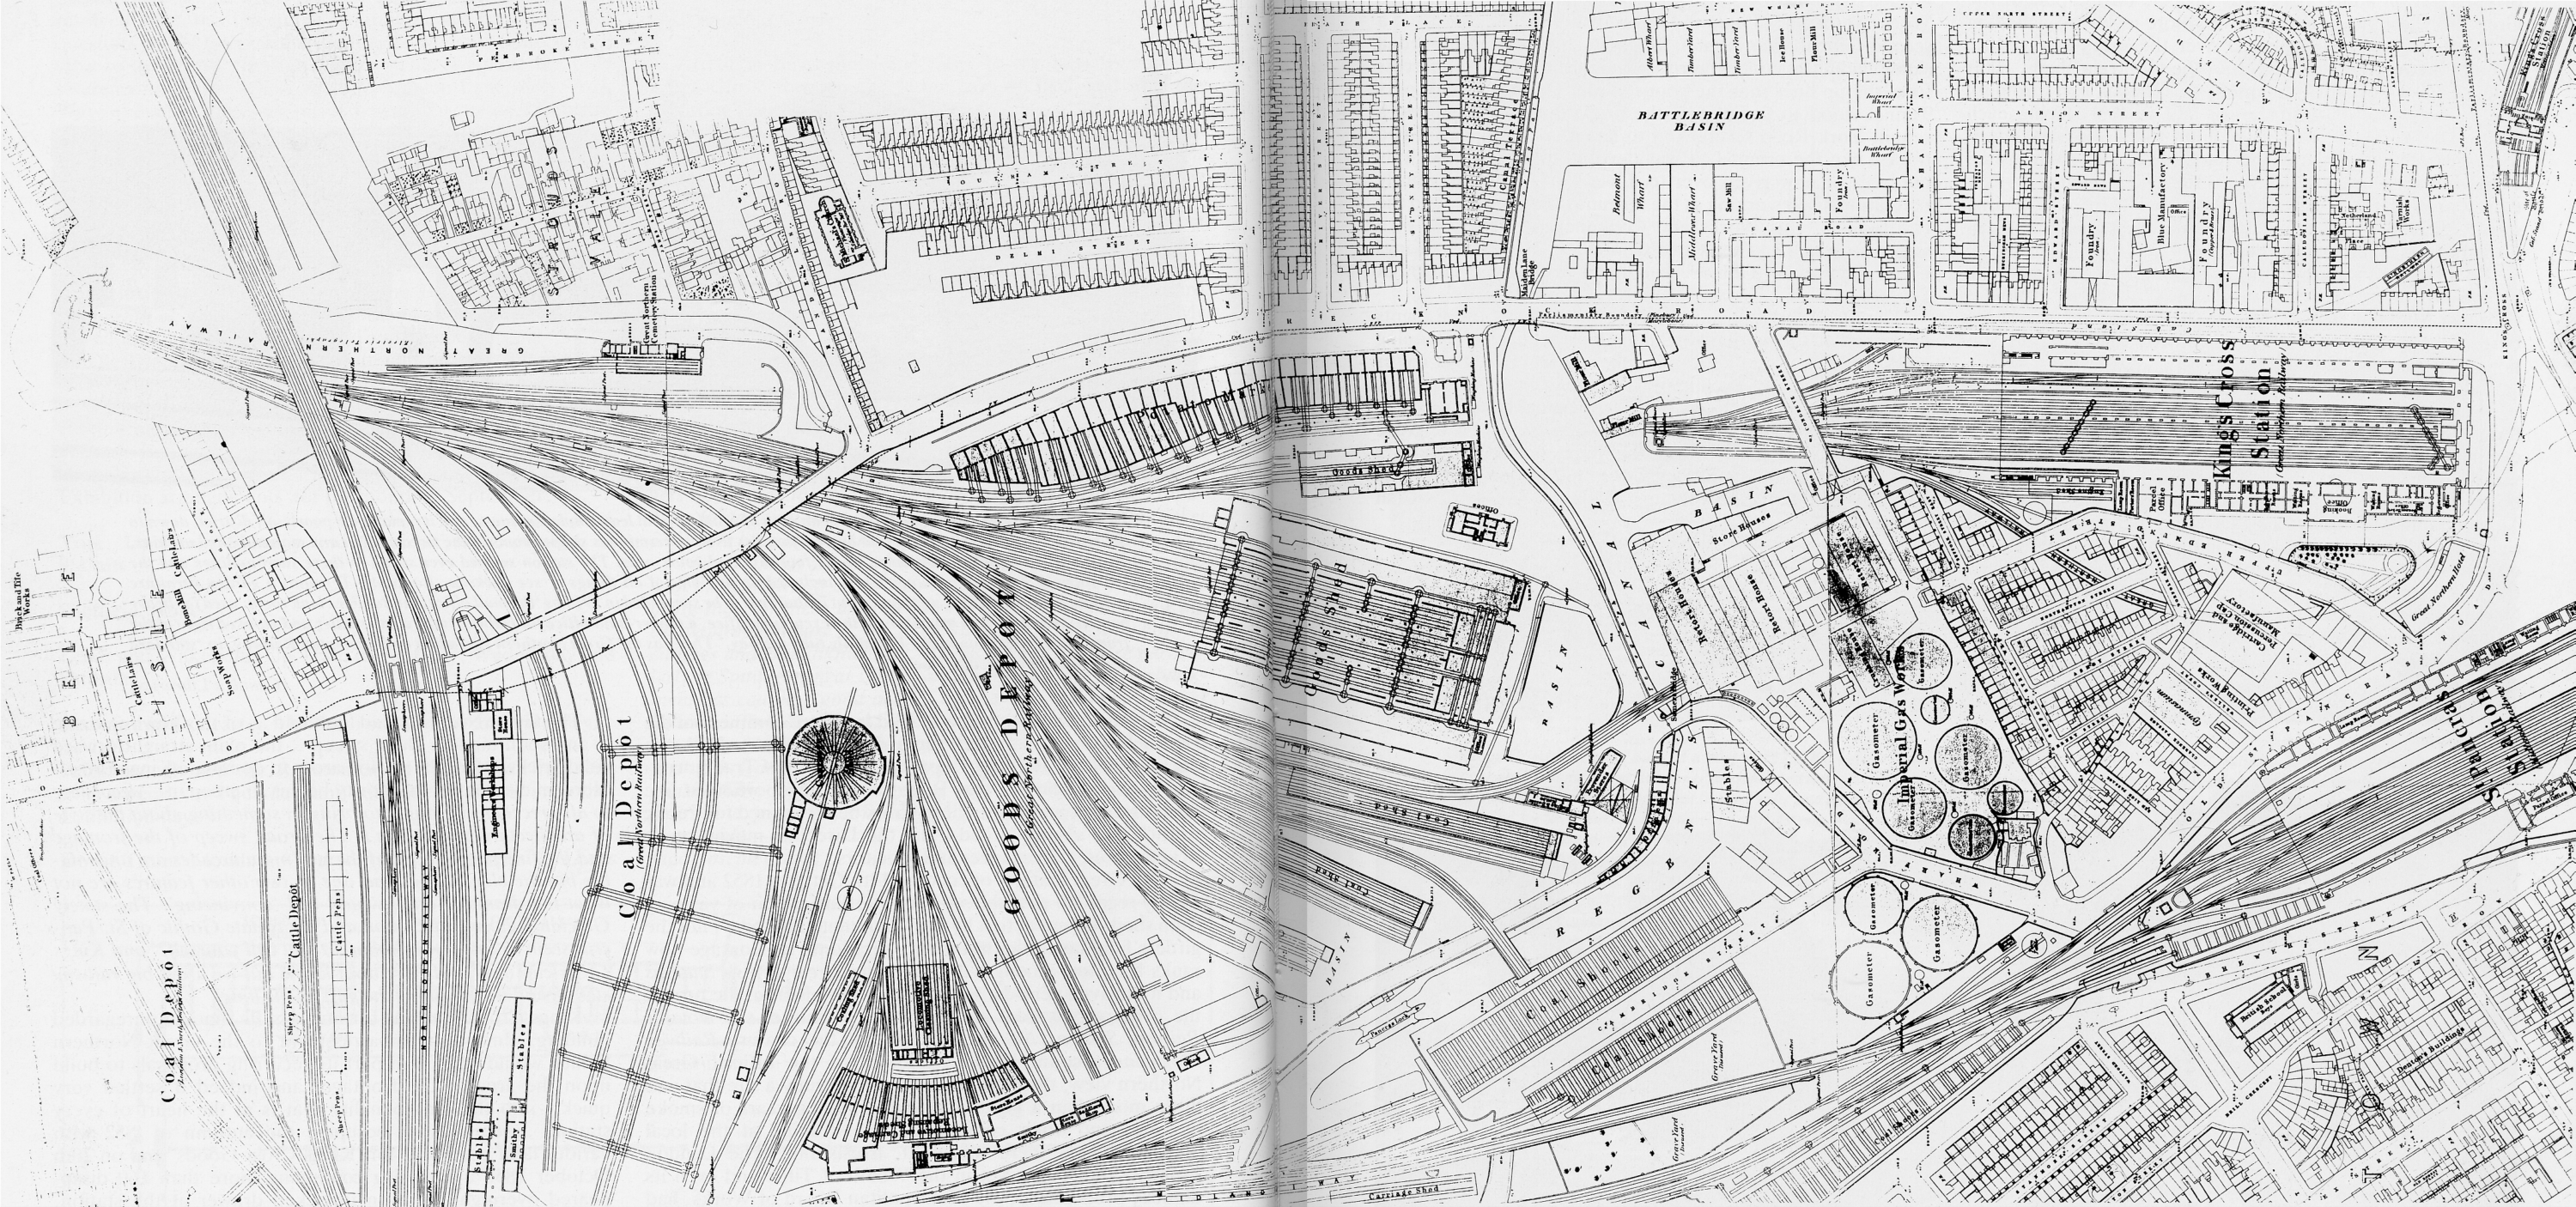 kingsx map1874 - Coal Drops Yard history in photos